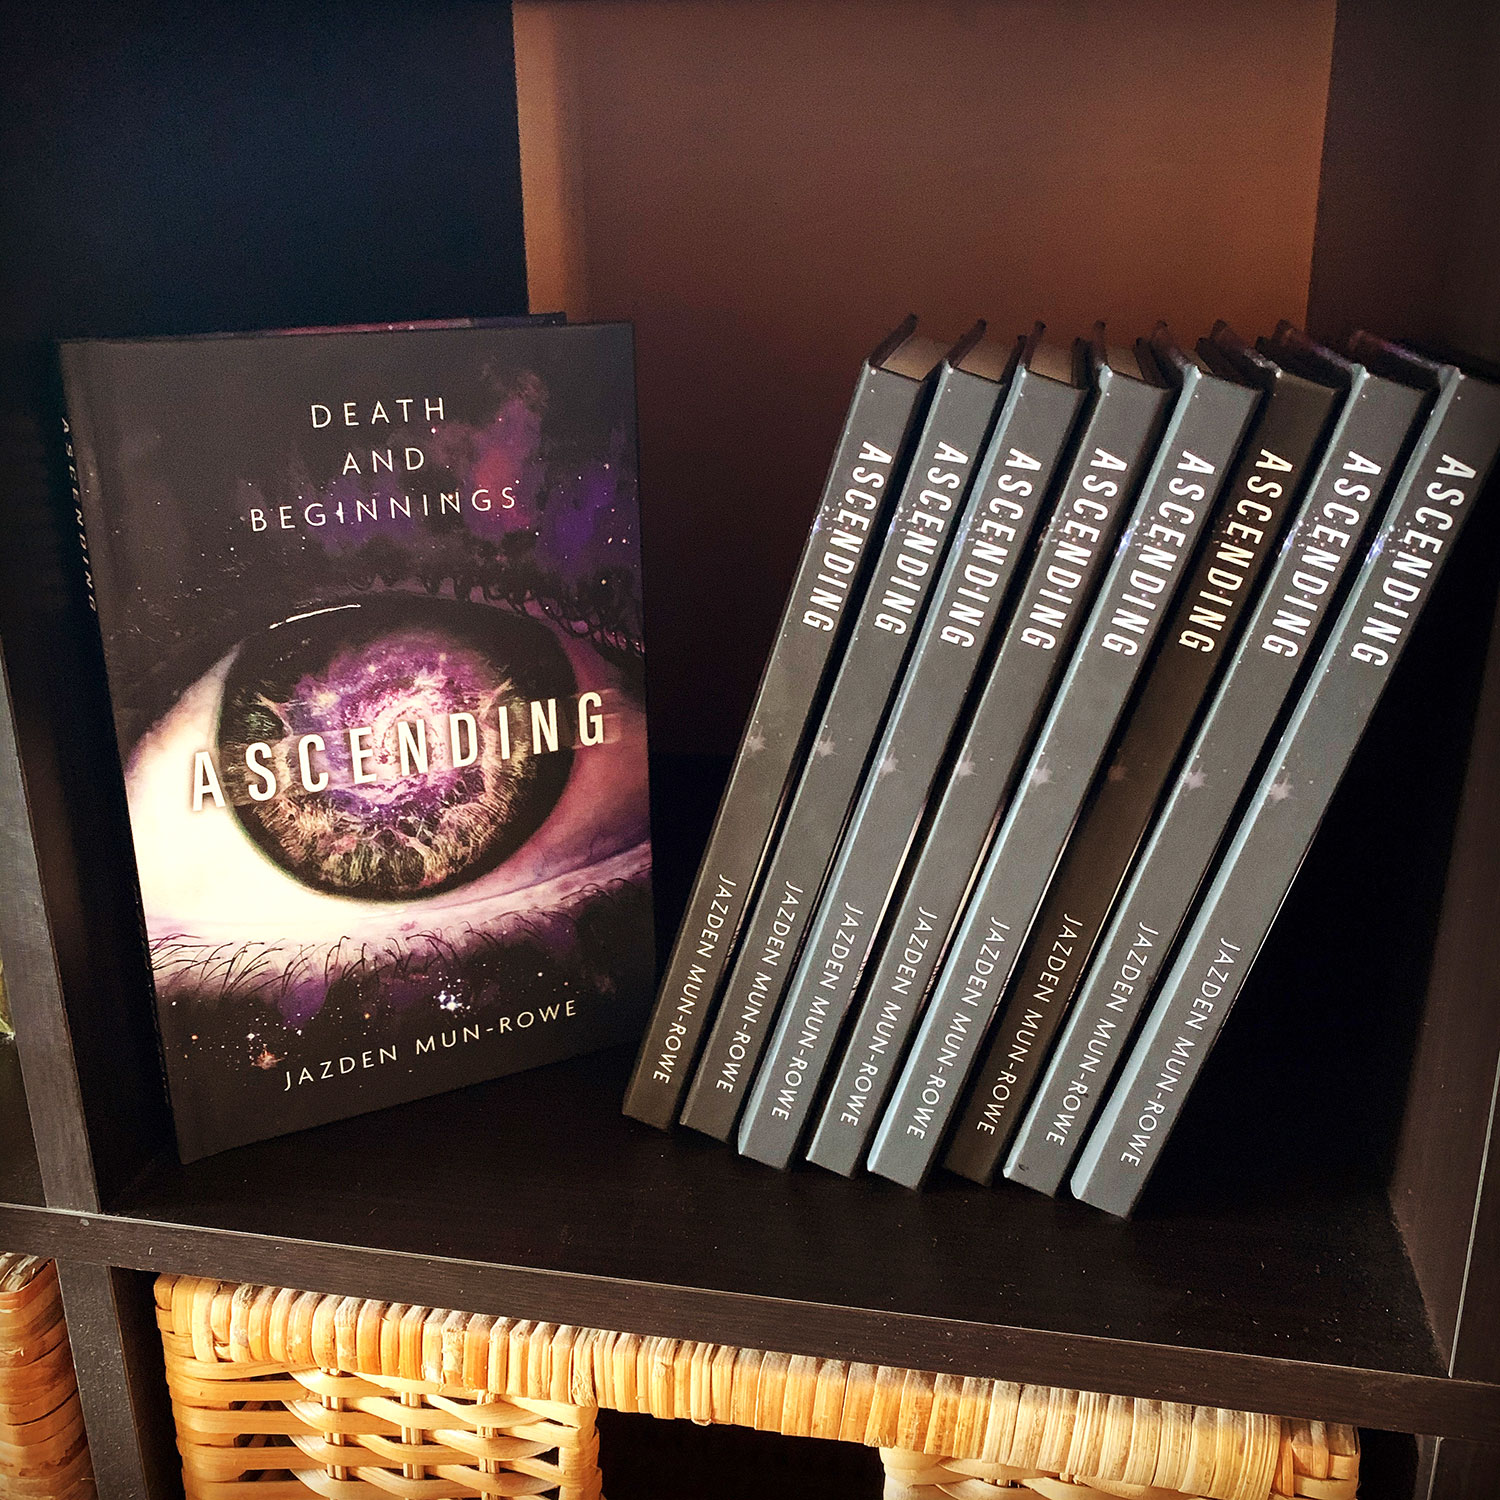 Author Jazden Mun-Rowe and book Ascending Death and Beginnings